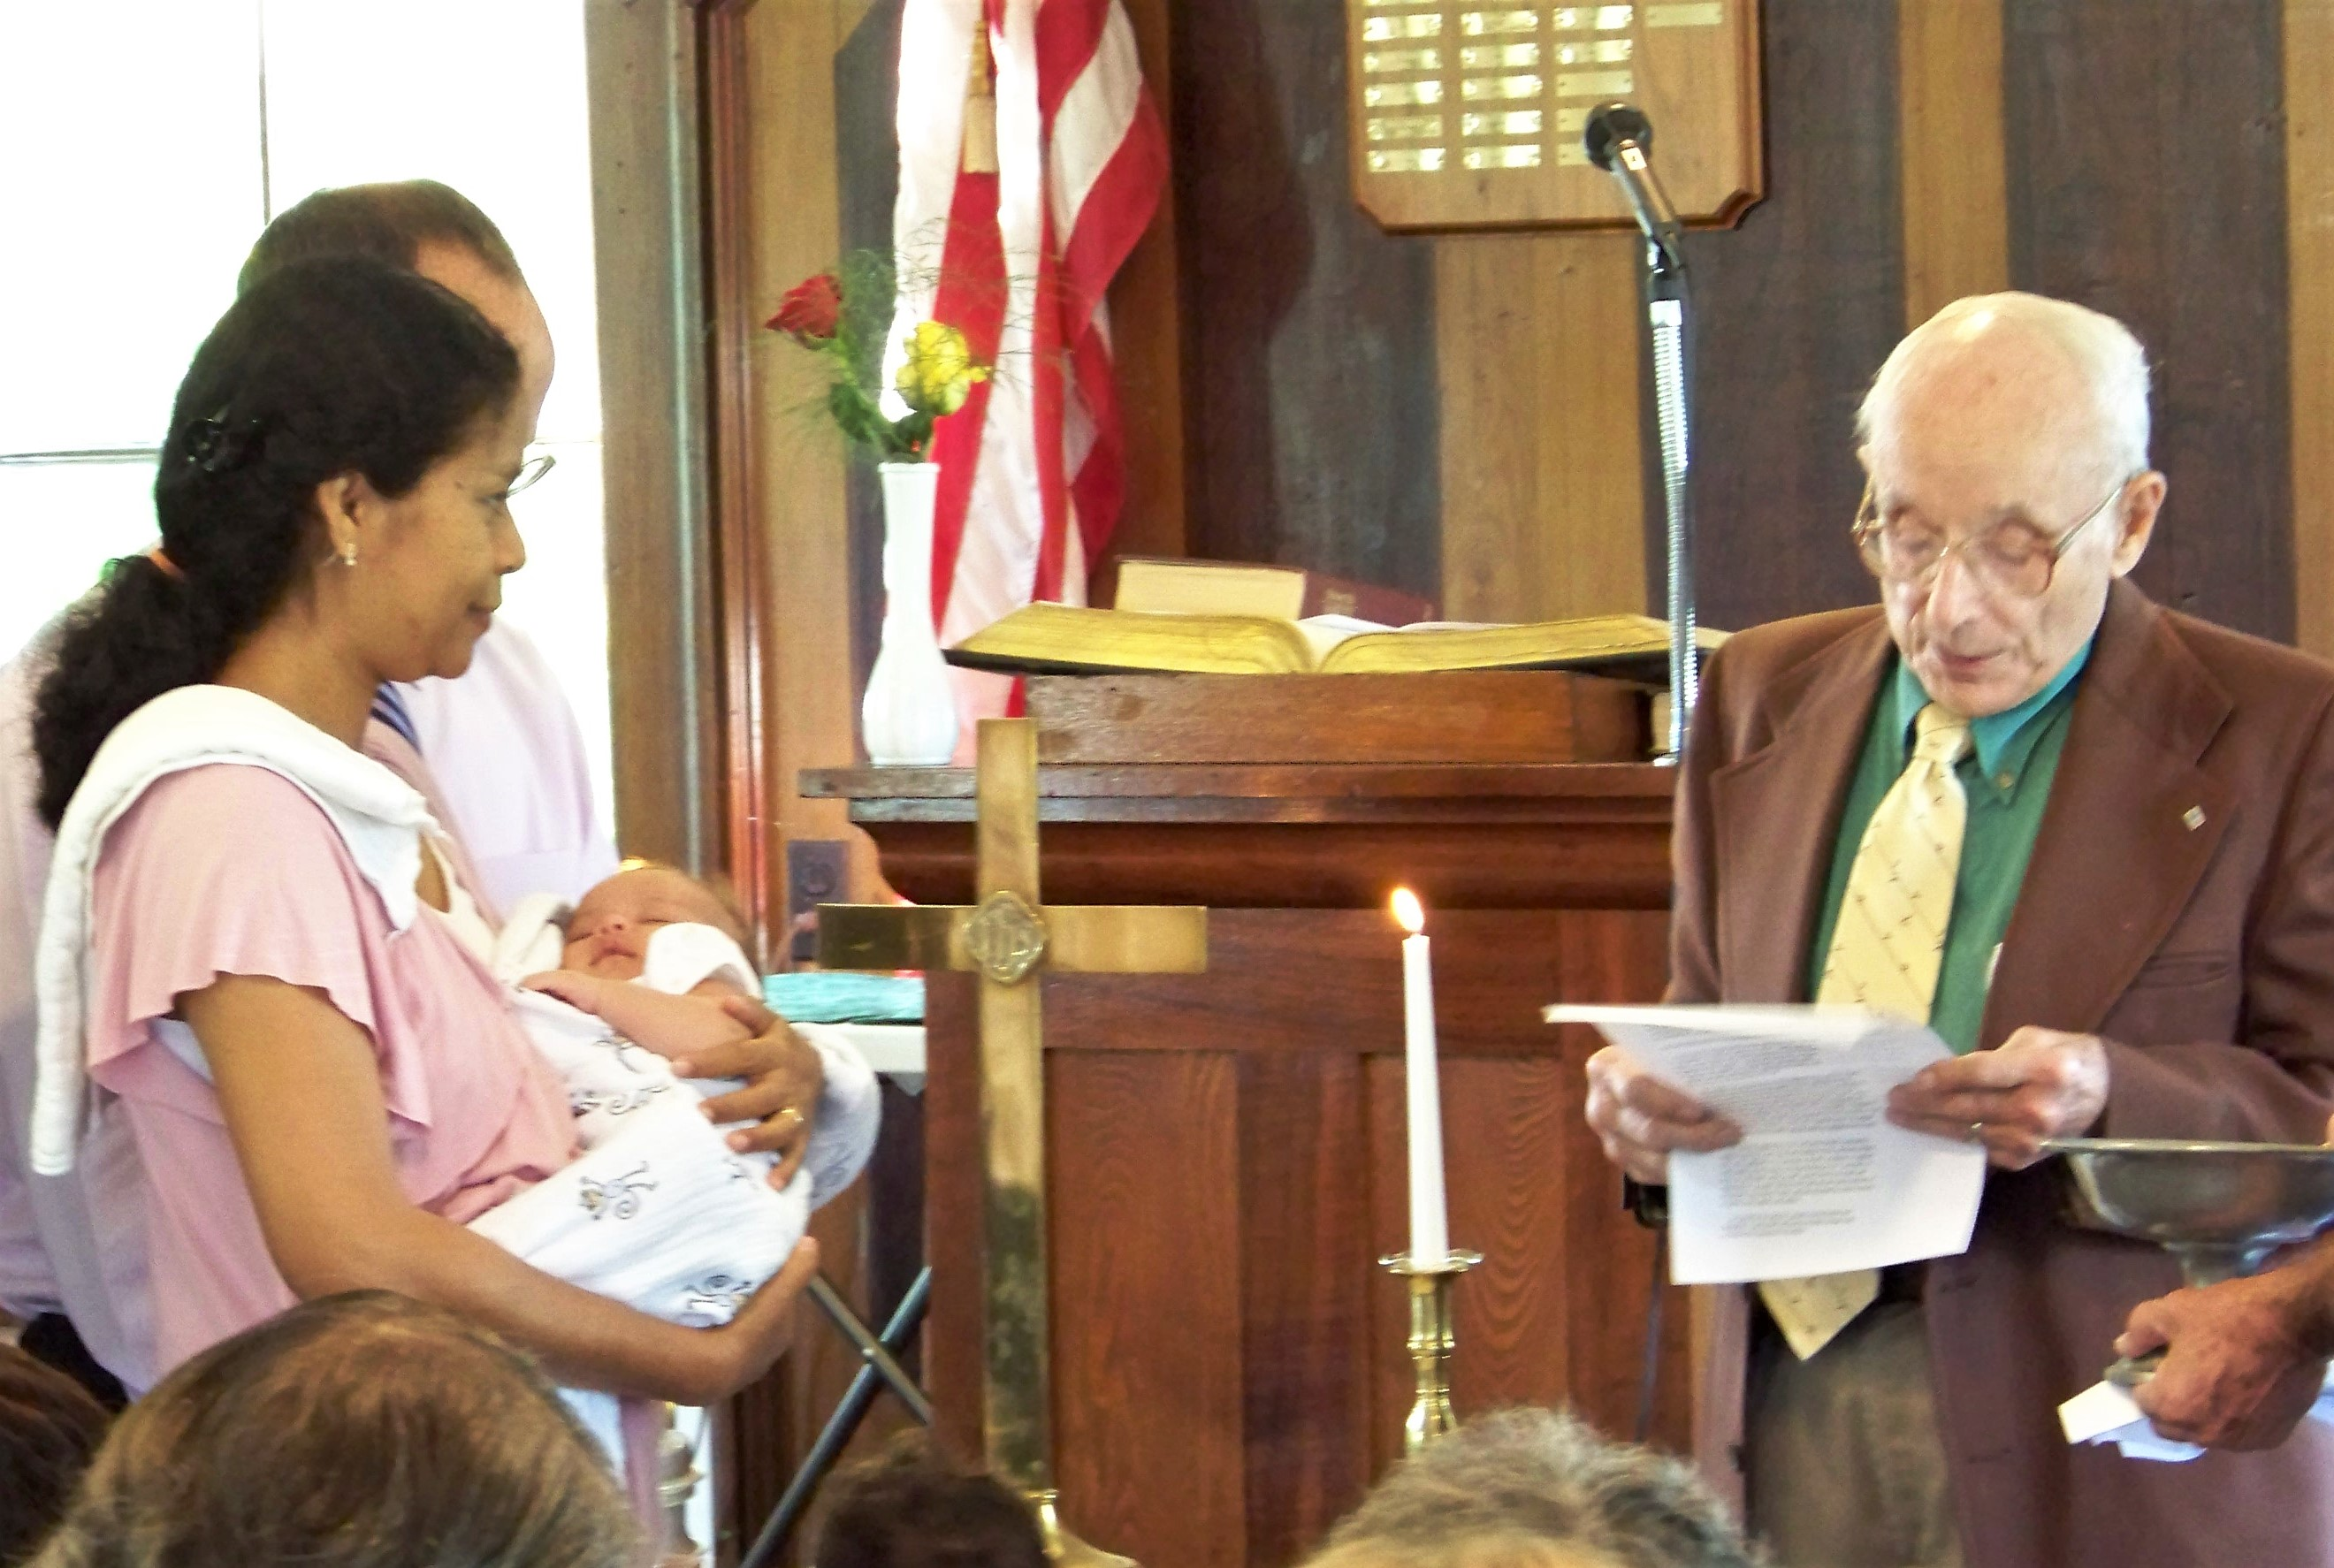 Dad baptizing Annika in September 2011 at the New England Presbyterian Church, a small rural church near Mom and Dad's home in Amesville, Ohio.